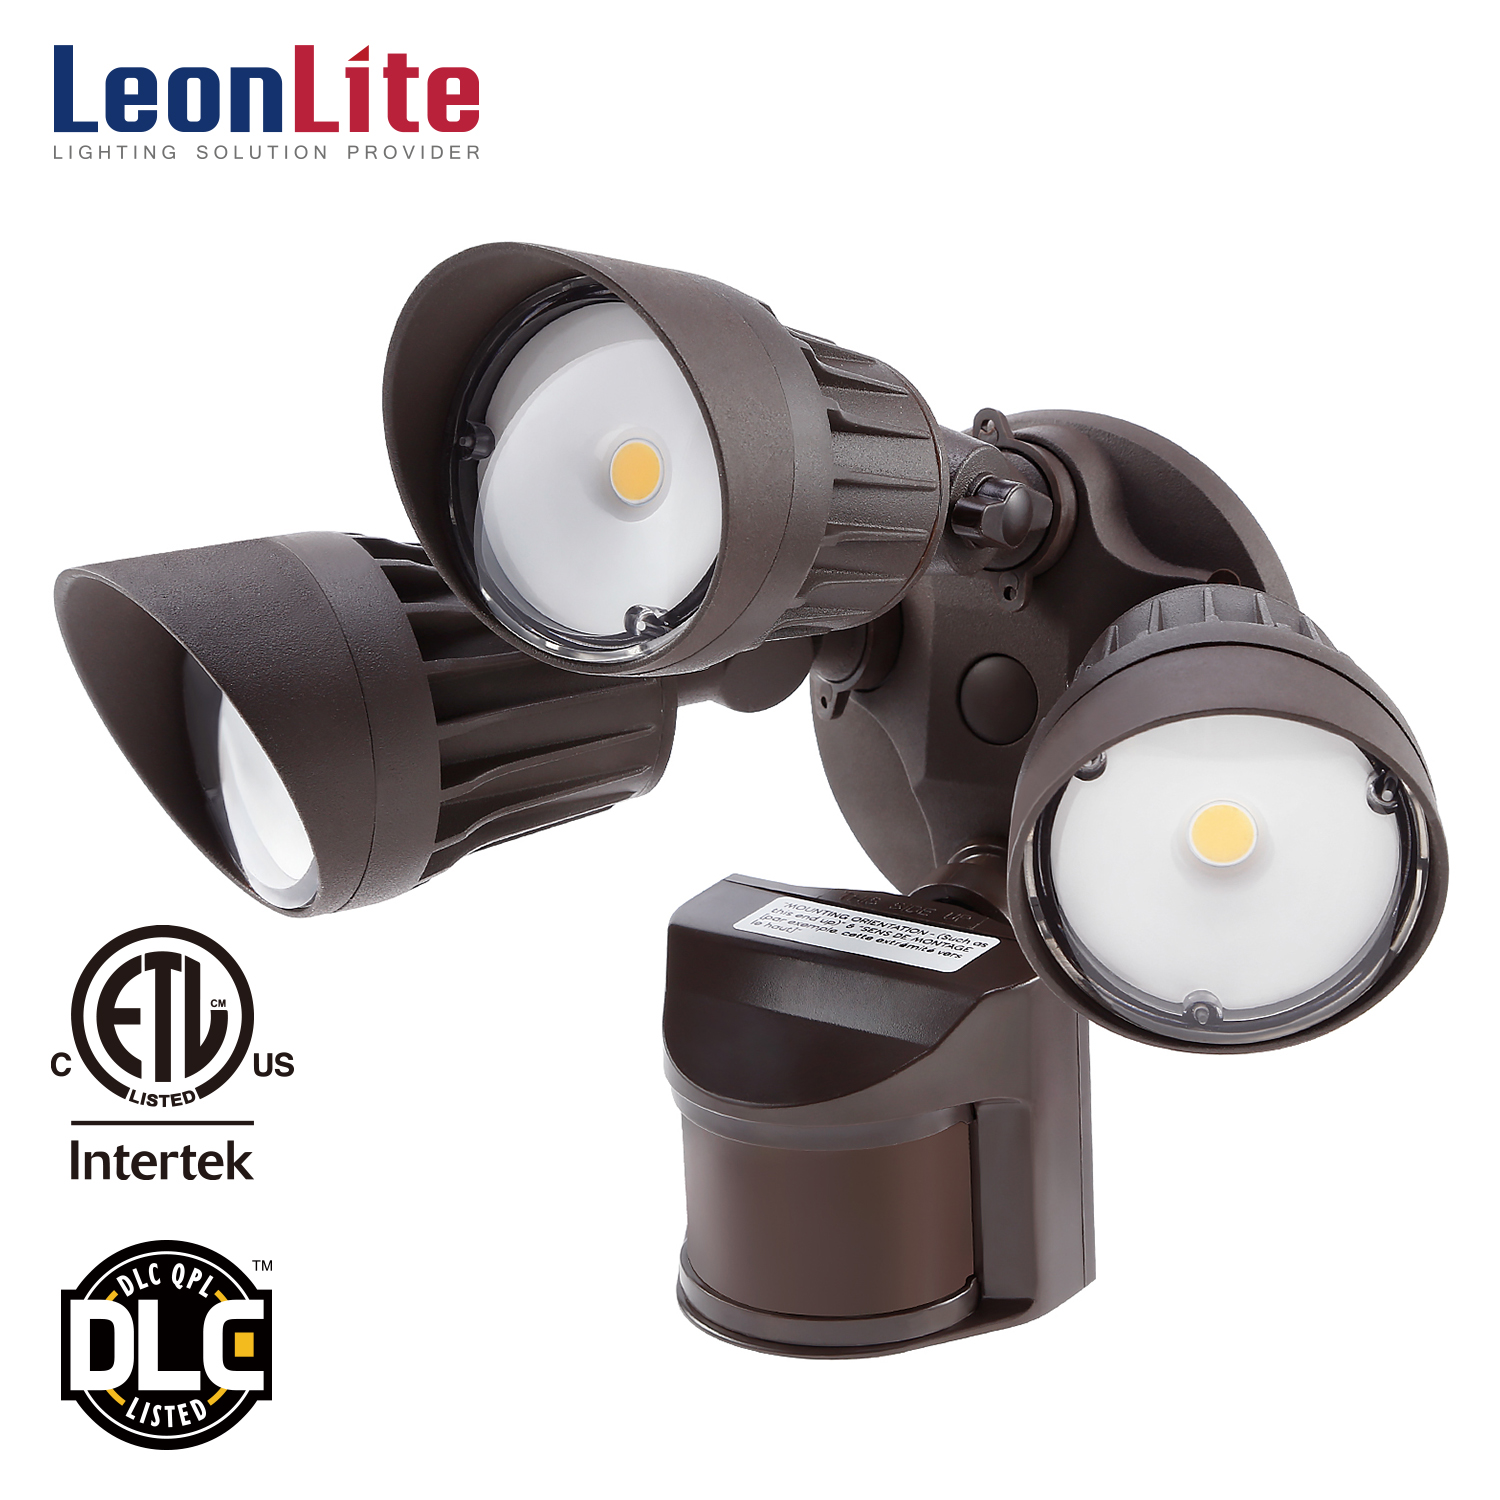 LEONLITE 3-Head Motion Activated LED Outdoor Security Light, 30W LED Flood Light, Green Monday, 3000K Warm White, Bronze